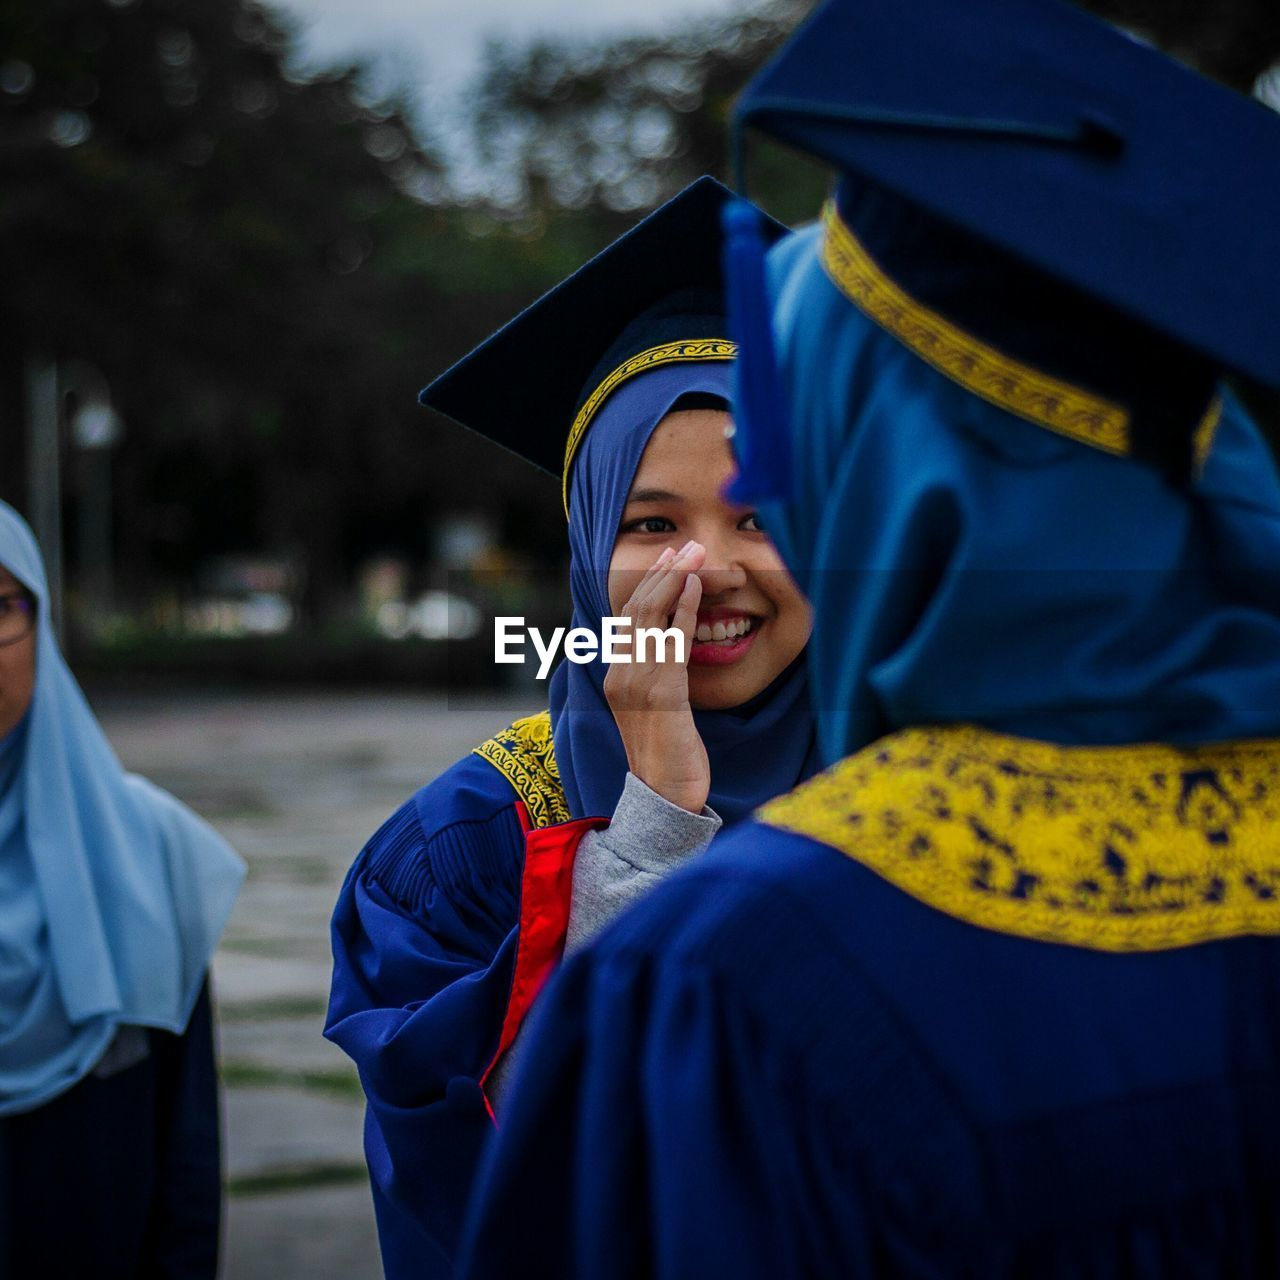 Smiling university students in graduation gowns